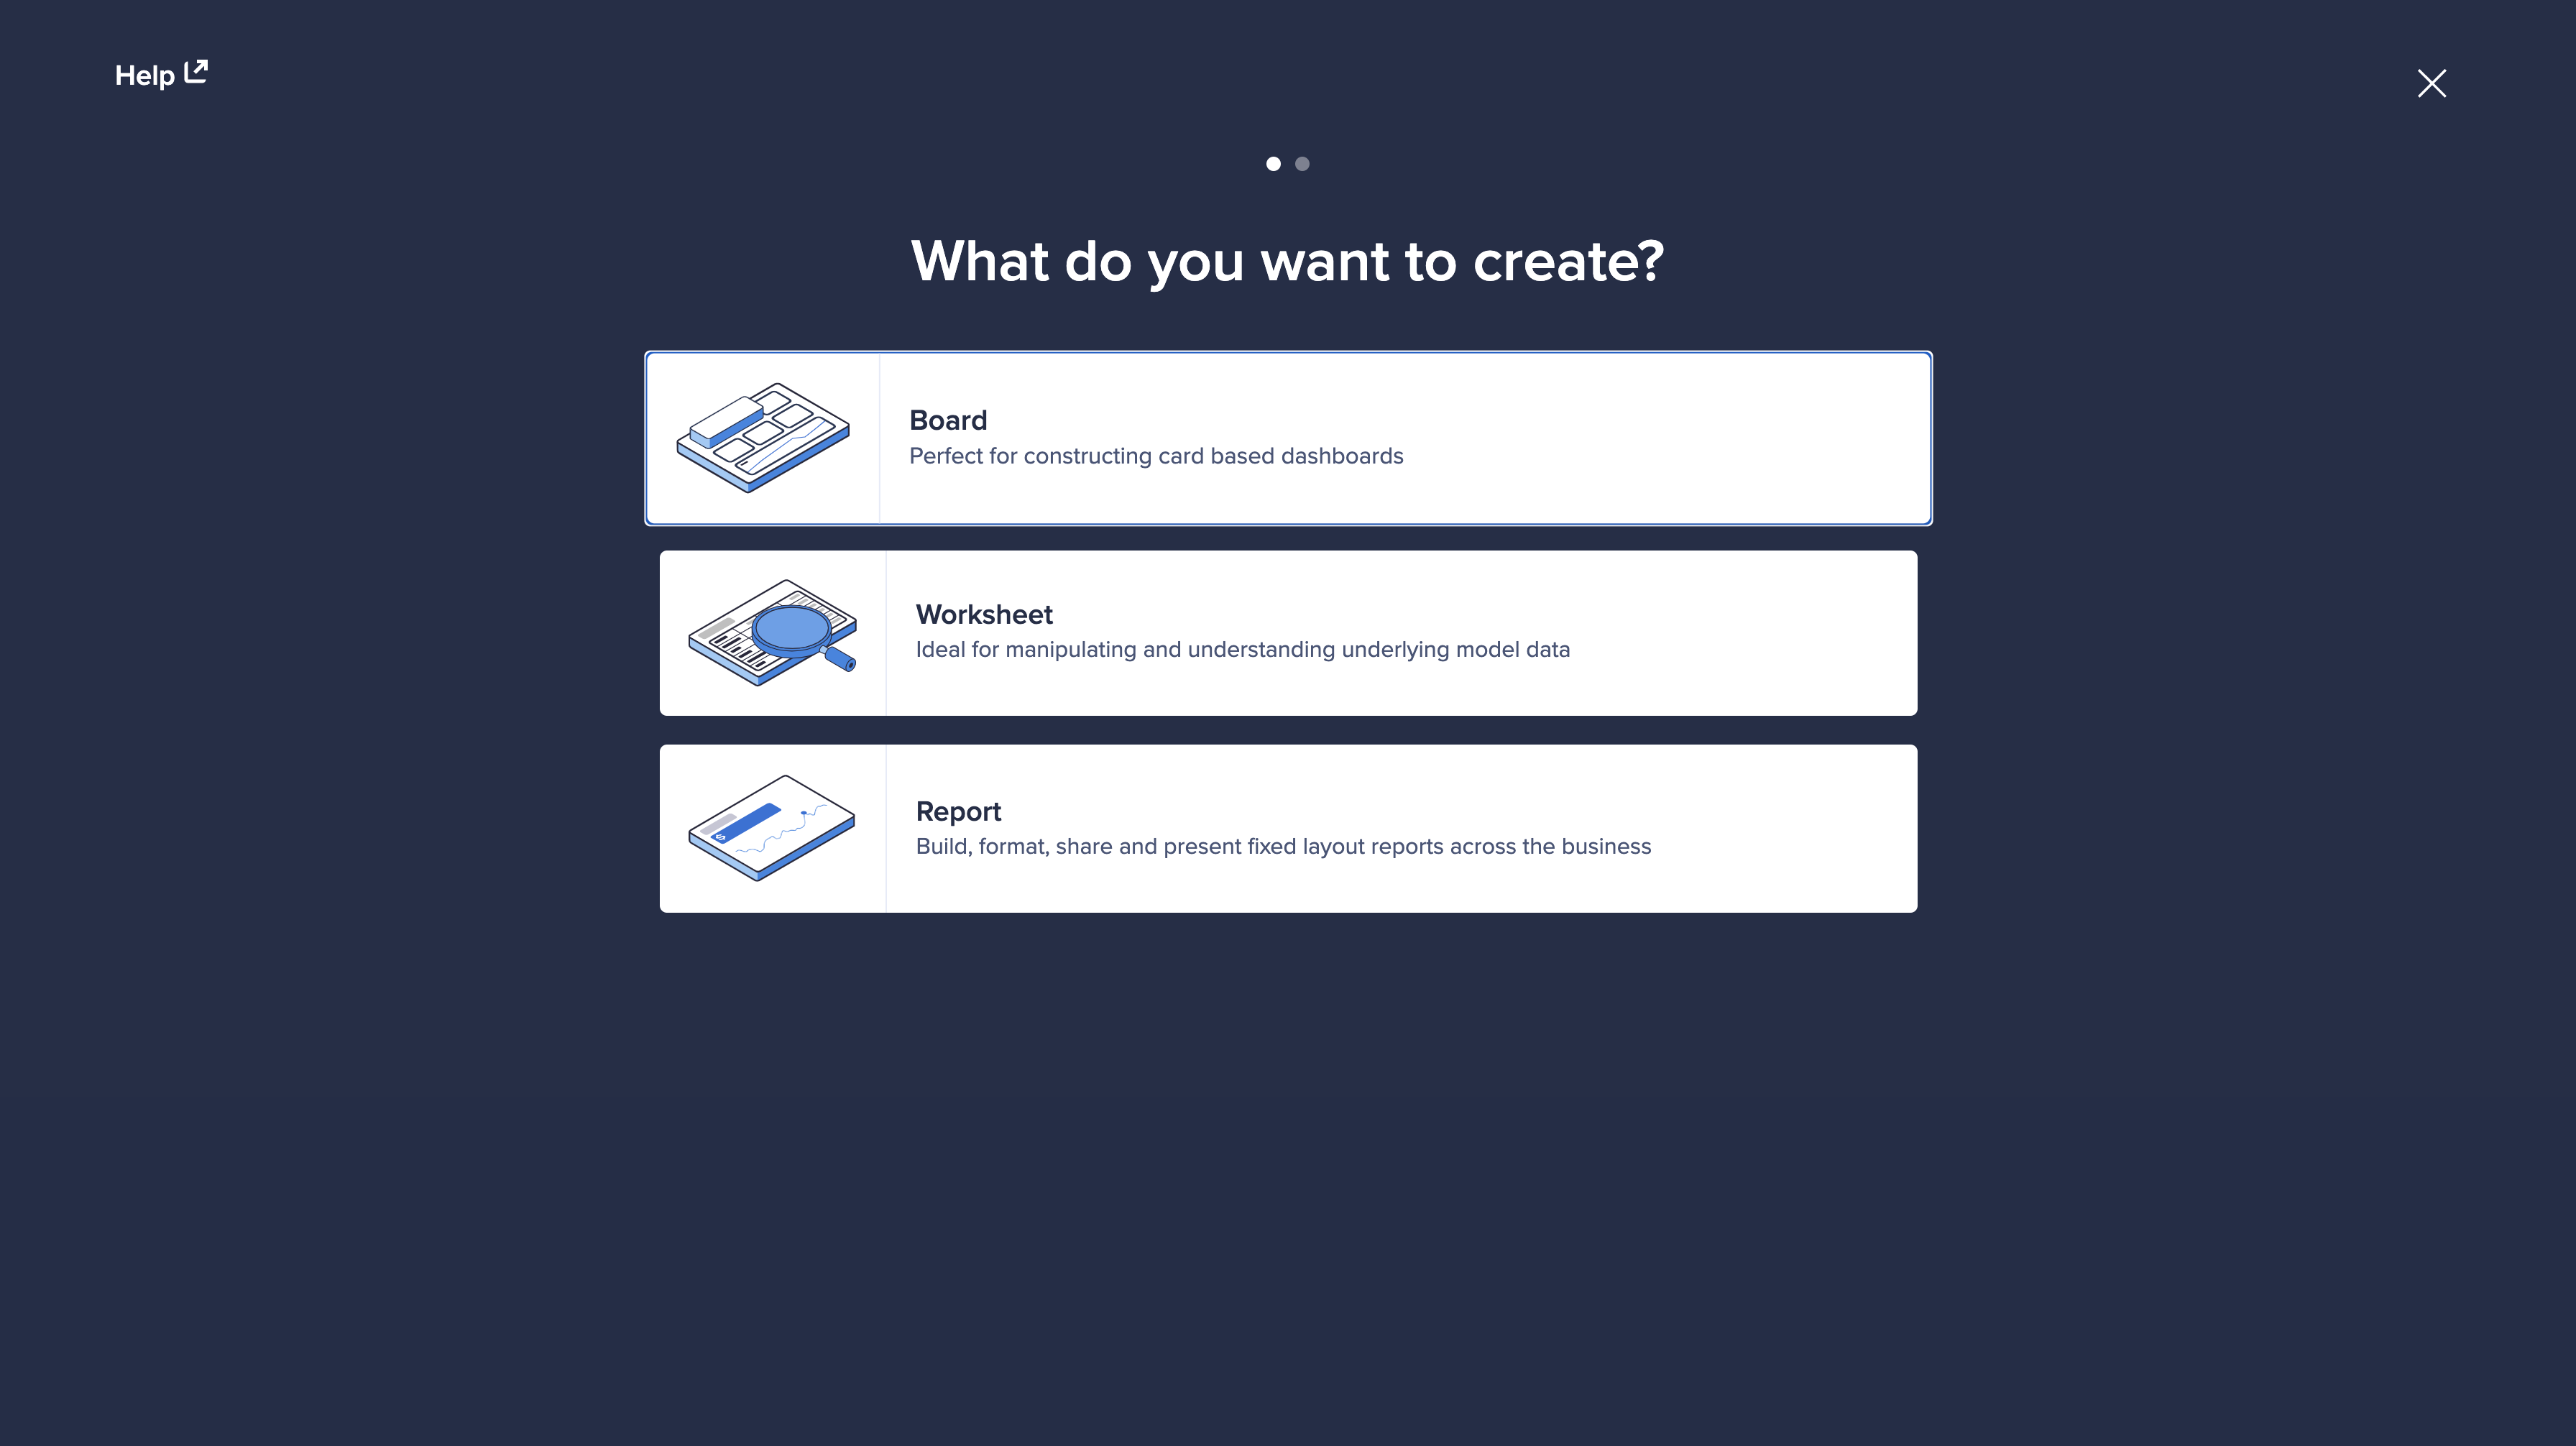 Step one of the Create a page dialog. You can select the type of page you want to create: Board, Worksheet or Report